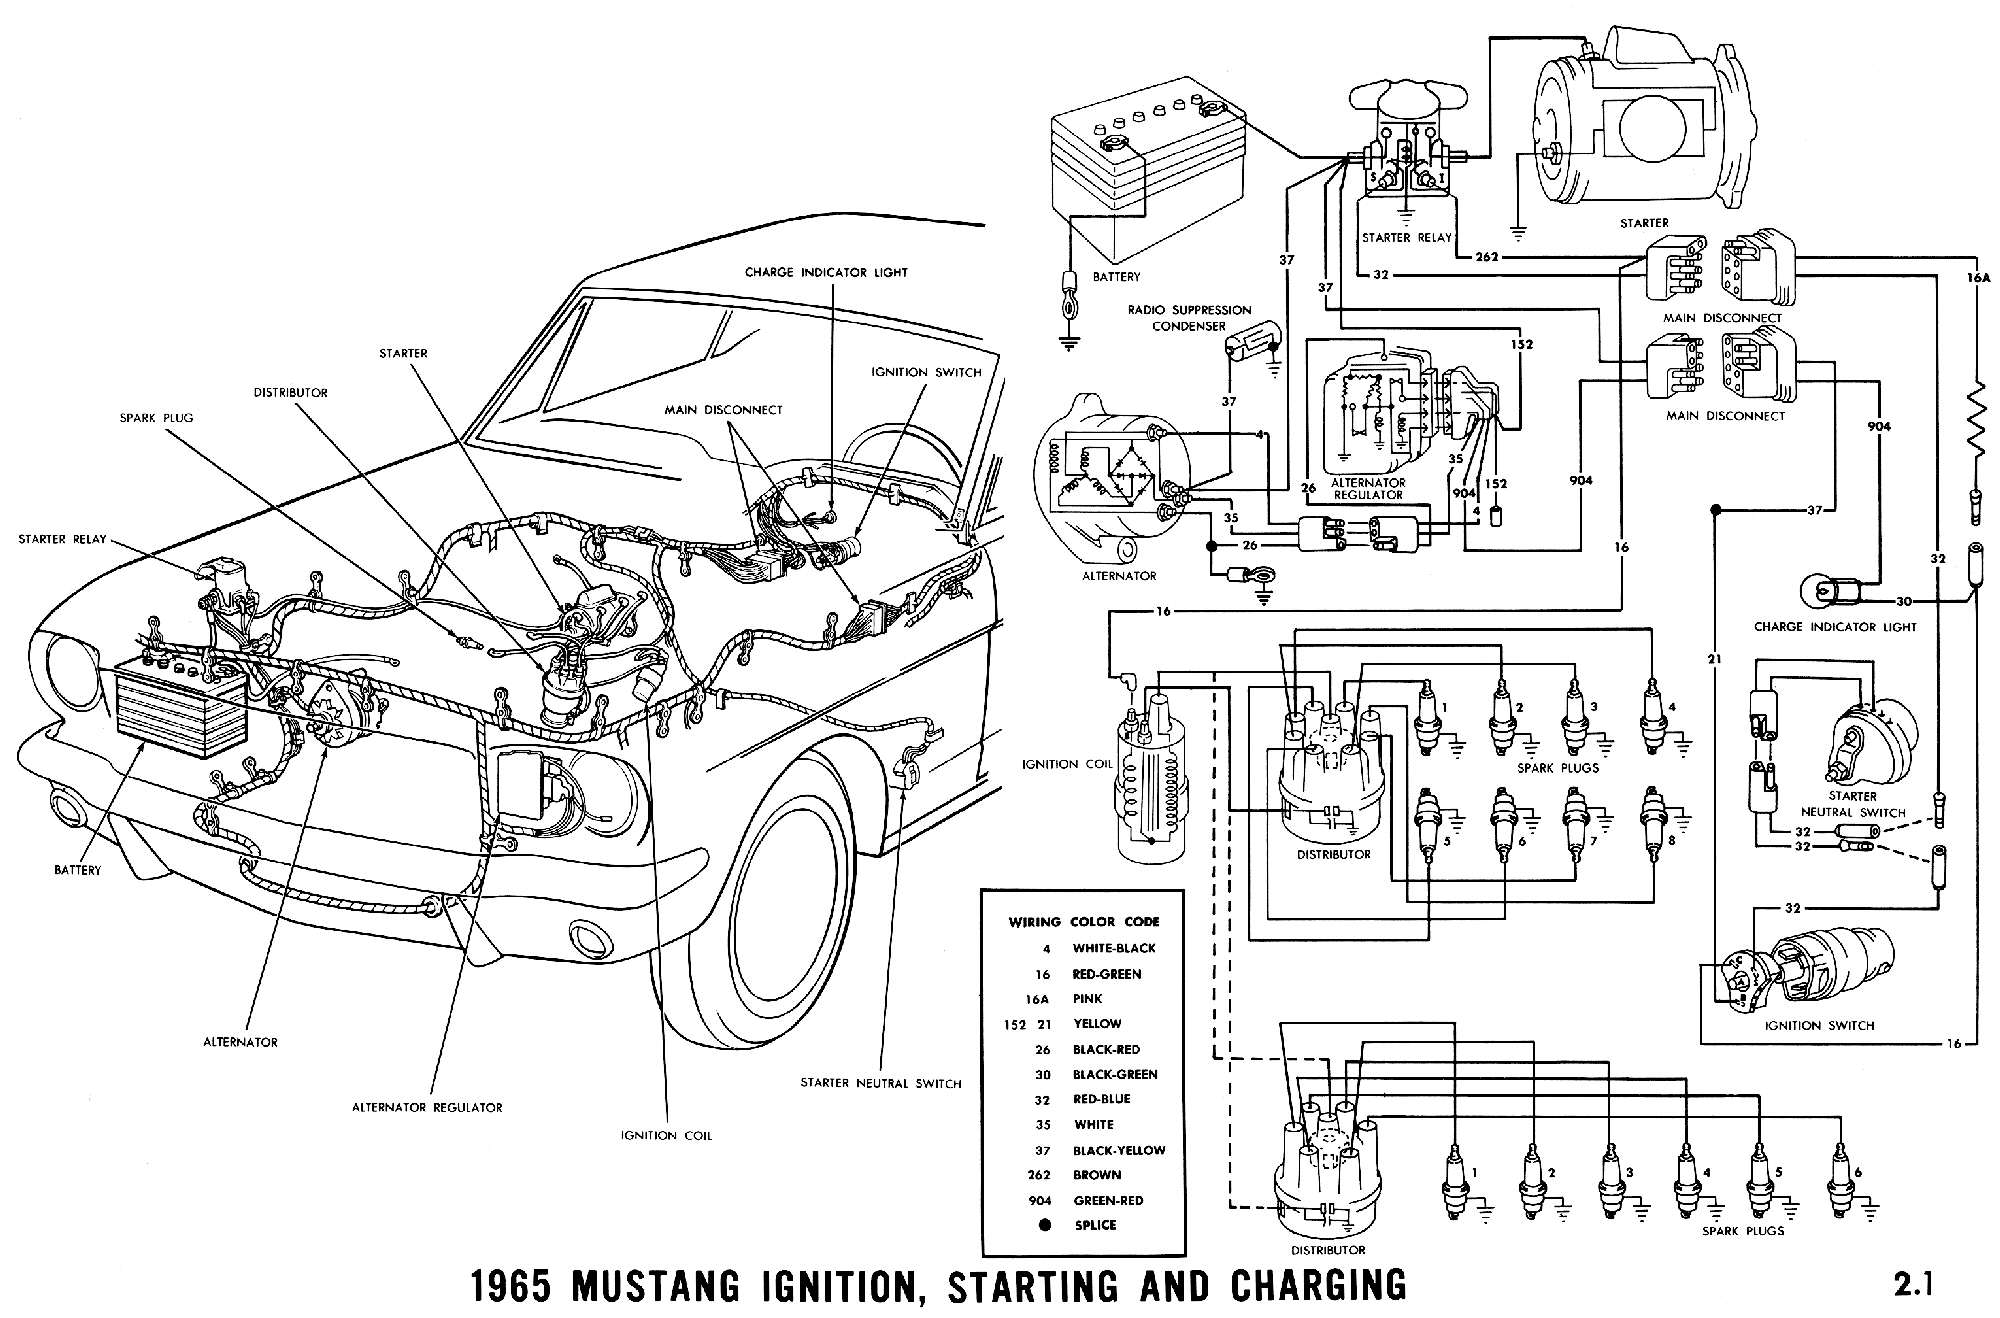 1965c 65 mustang dash wiring diagram 1965 ford mustang wiring diagram 2005 ford mustang instrument cluster wiring diagram at crackthecode.co